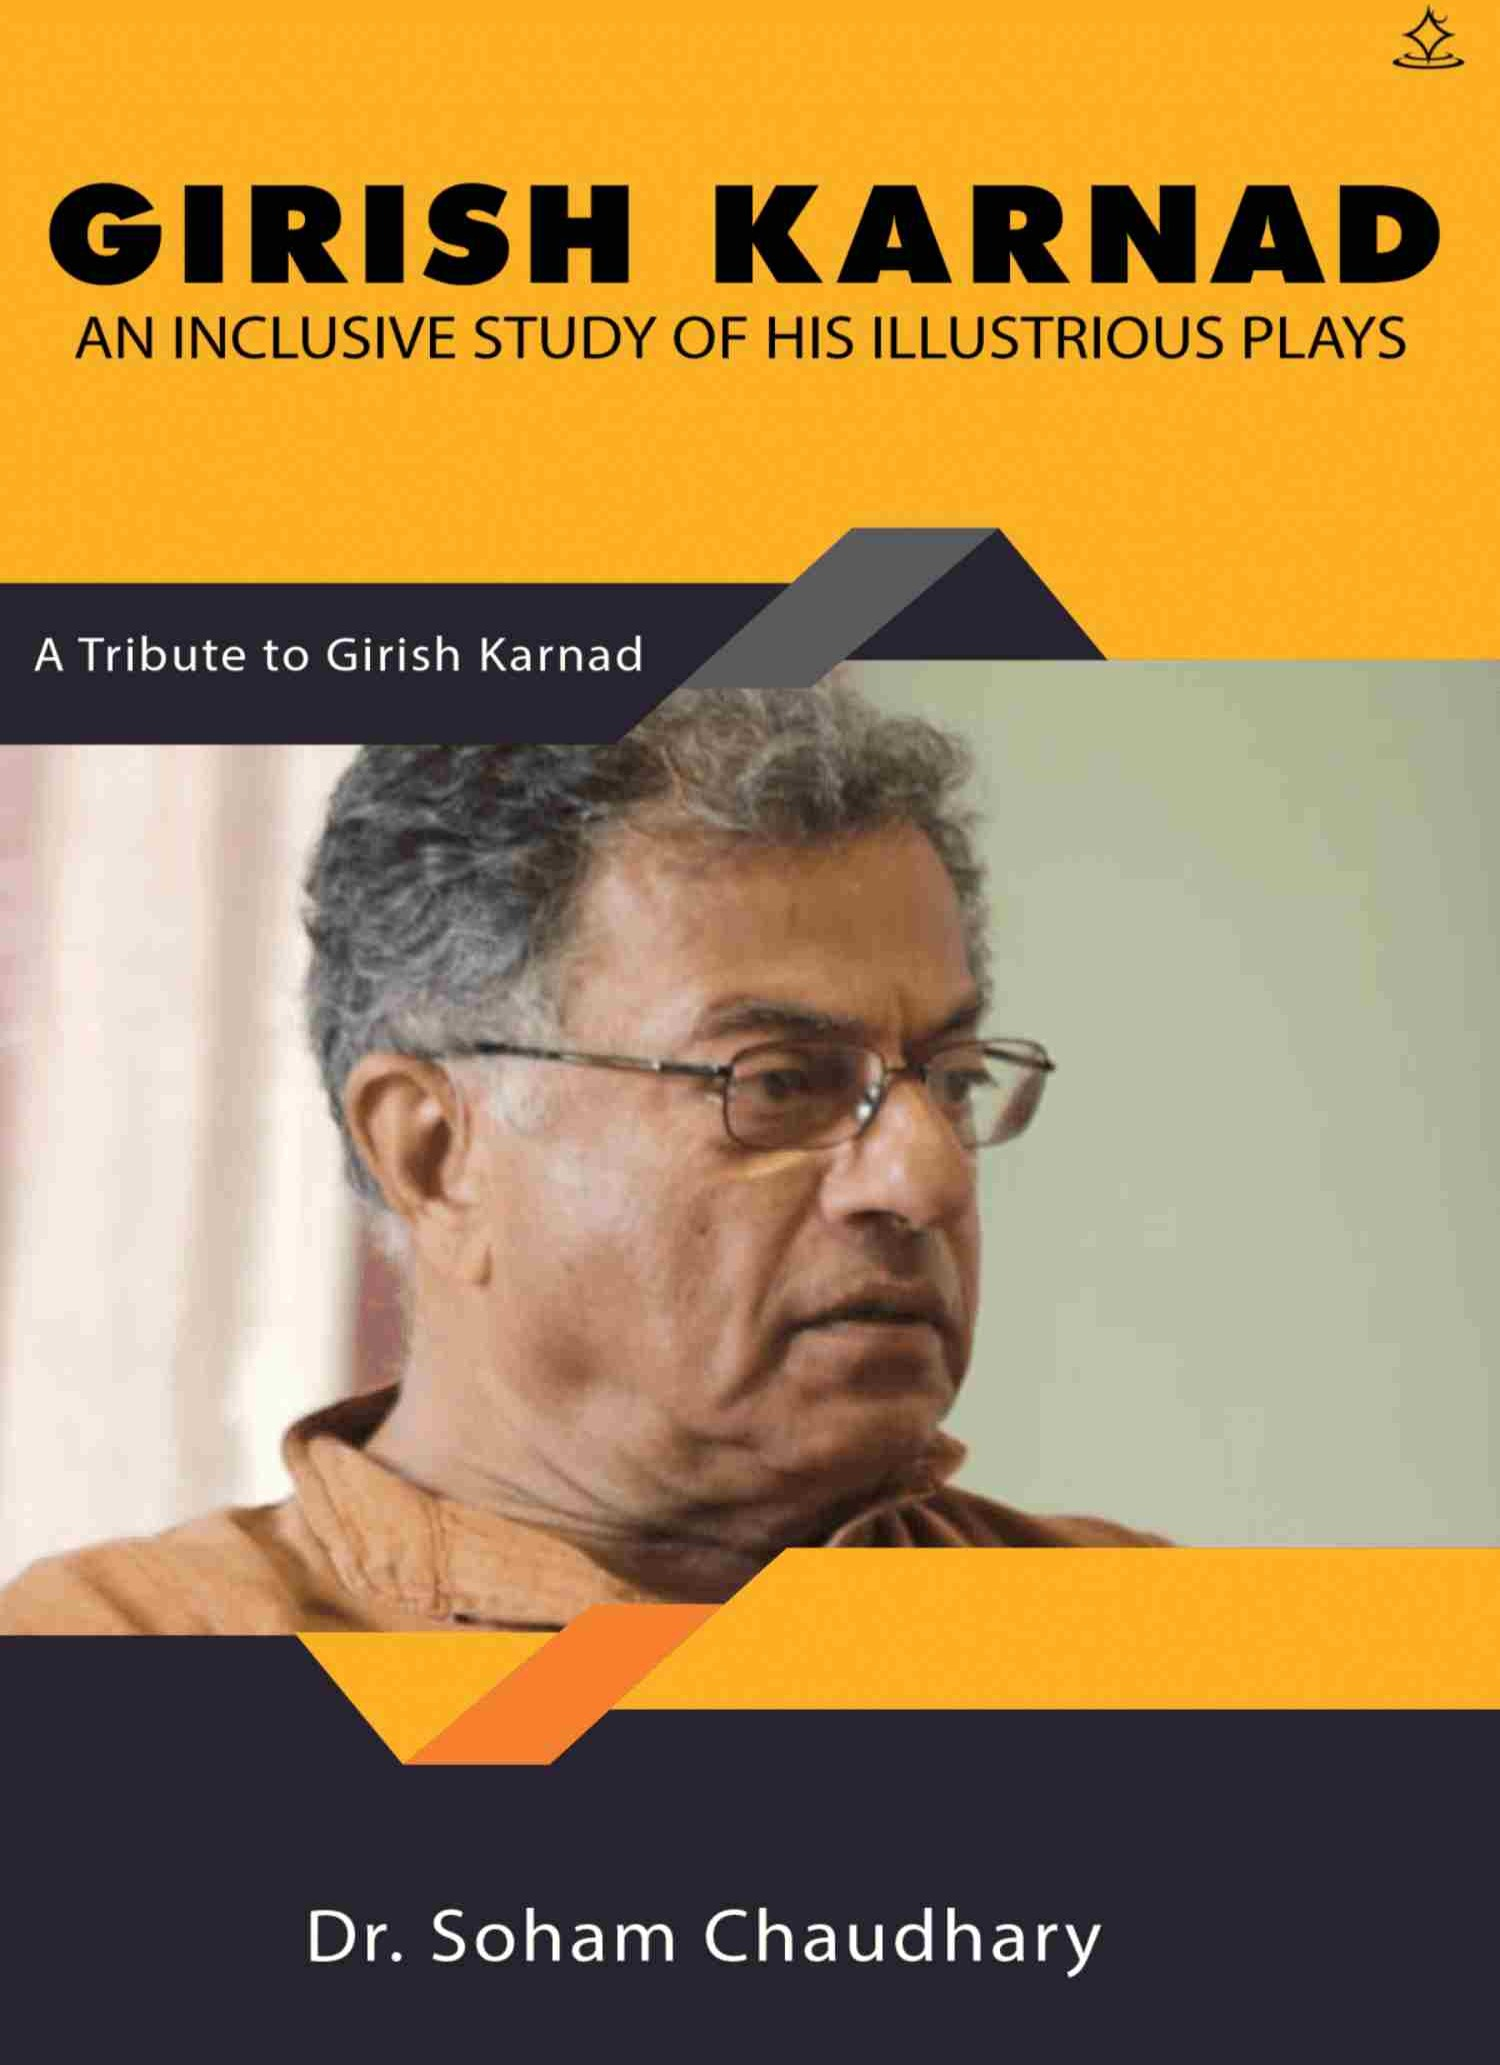 Girish Karnad: An inclusive study of his illustrious plays